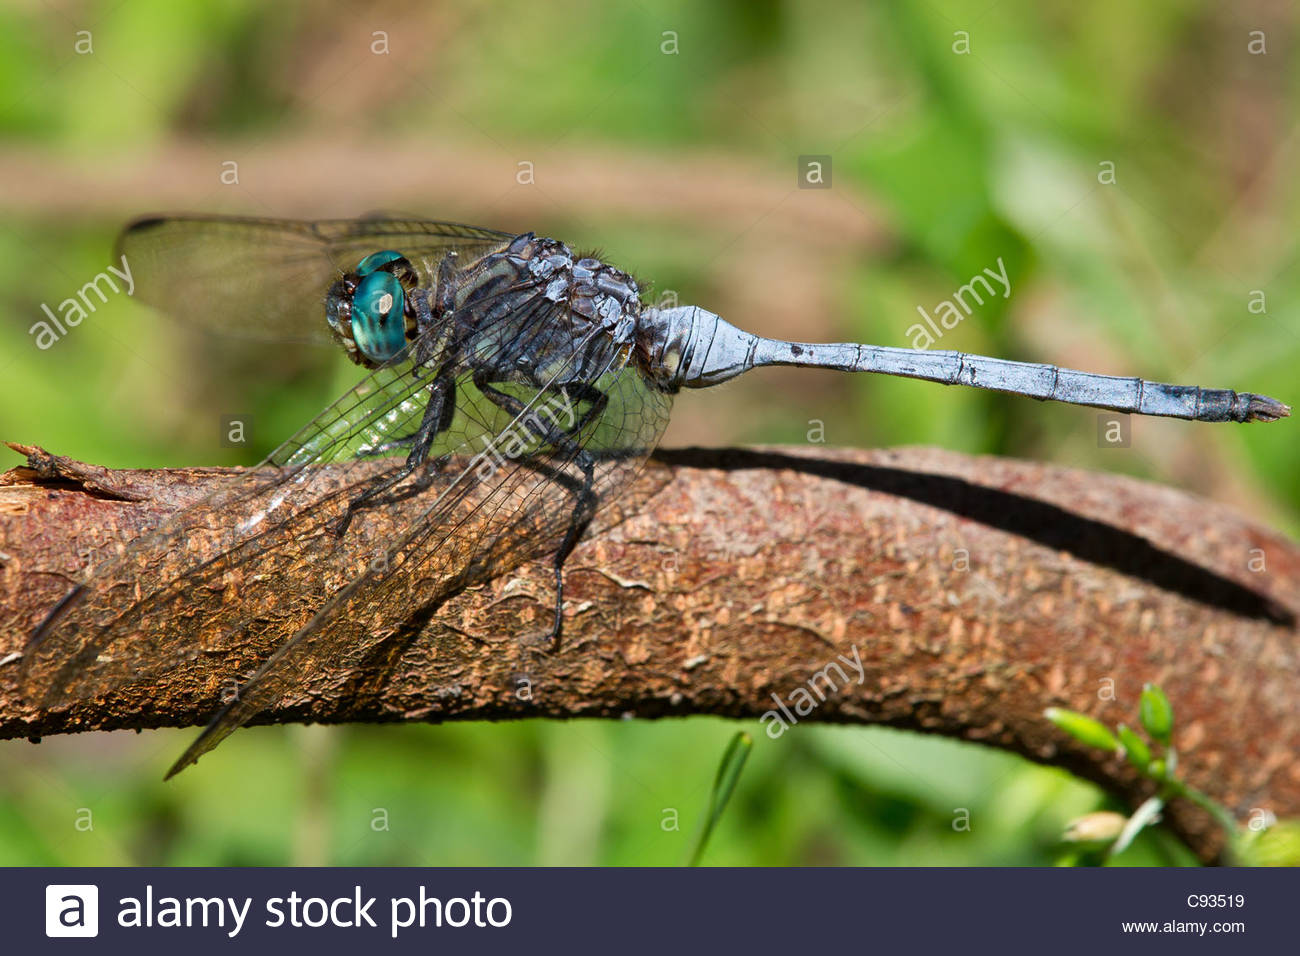 Orthetrum brachiale dragonfly known as the Tough Skimmer or Strong Skimmer - Stock Image